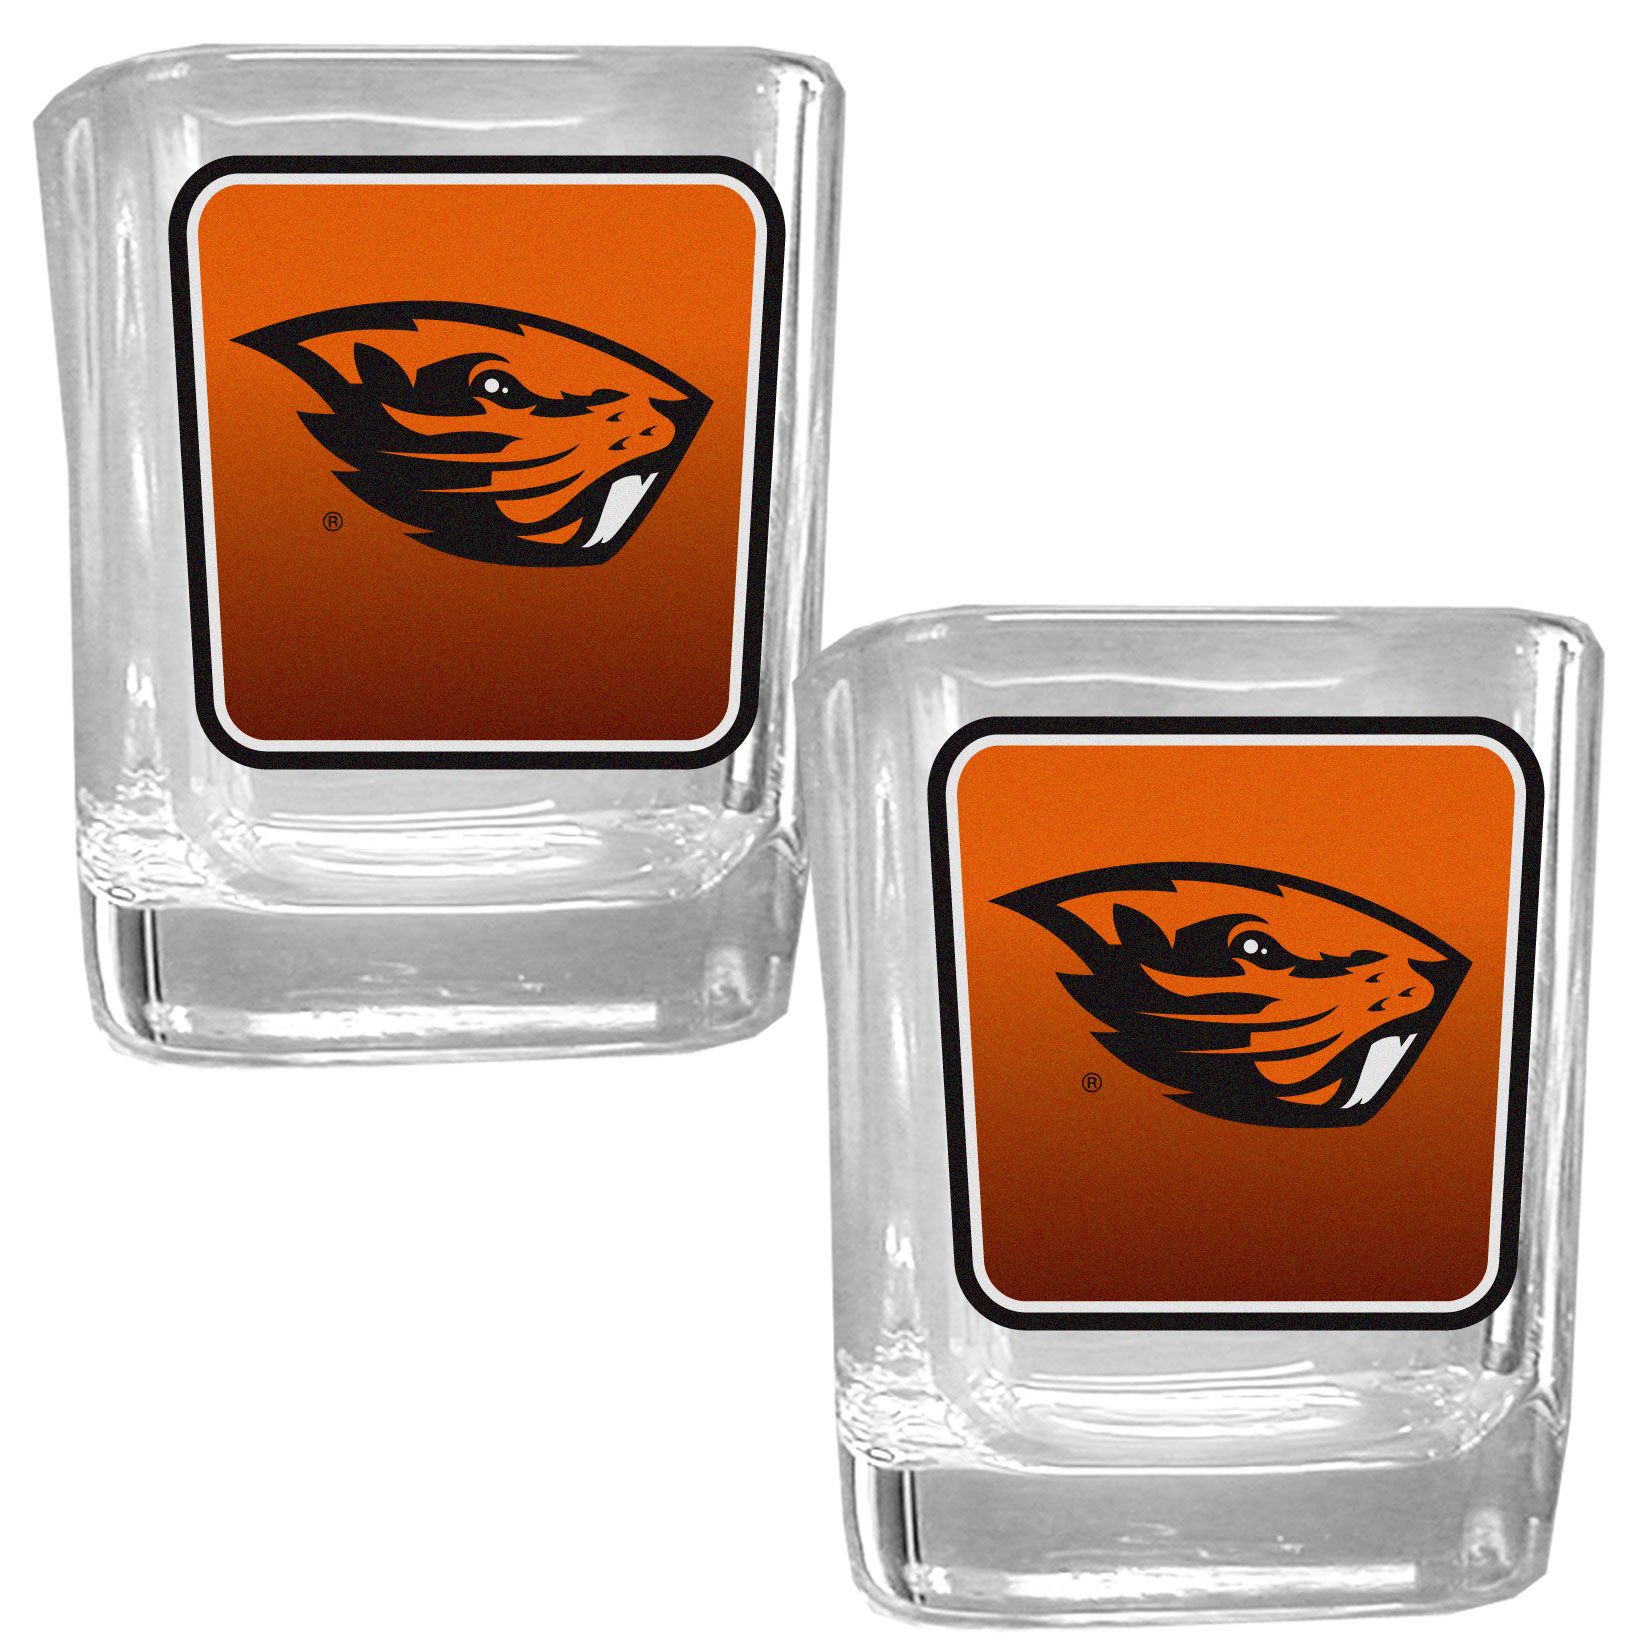 Oregon St. Beavers Square Glass Shot Glass Set - Our glass shot glasses are perfect for collectors or any game day event. The 2 ounce glasses feature bright, vidid digital Oregon St. Beavers graphics. Comes in a set of 2.